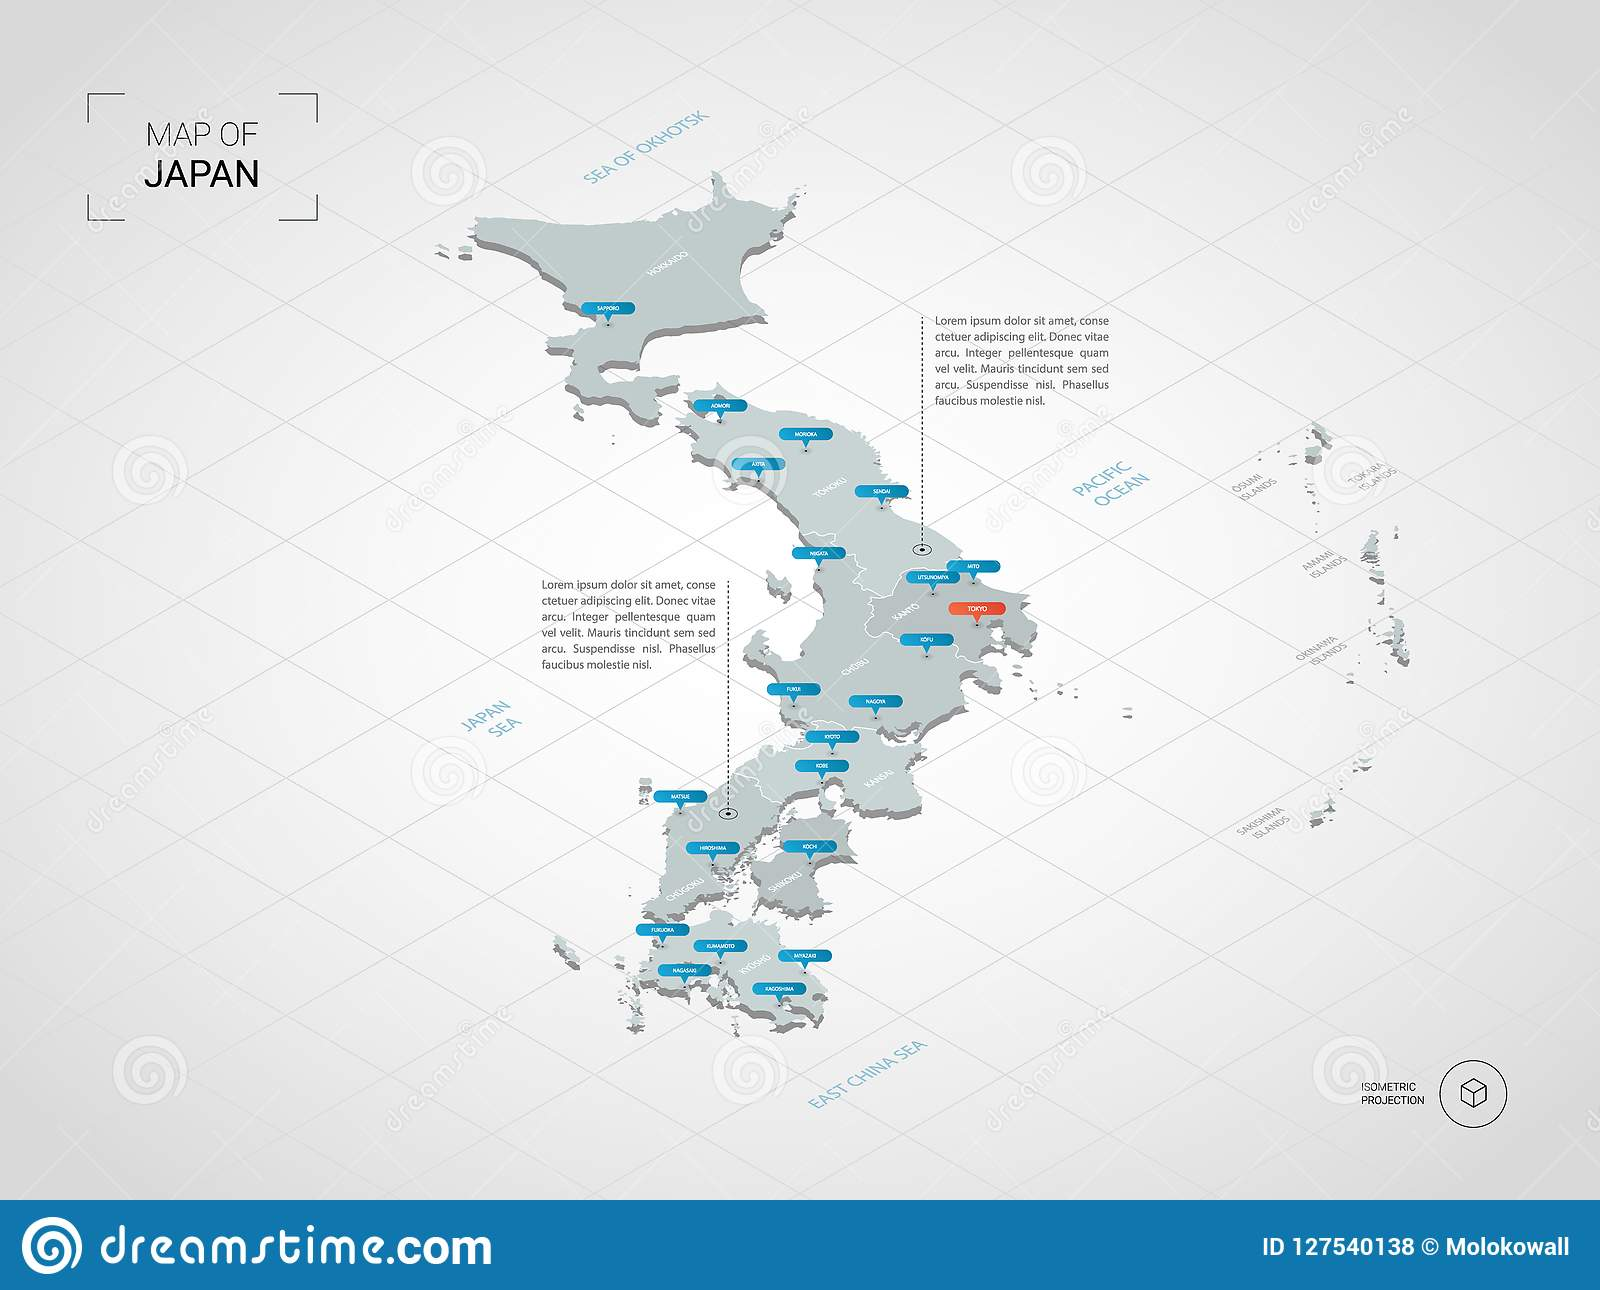 Isometric Japan Map With City Names And Administrative Divisions